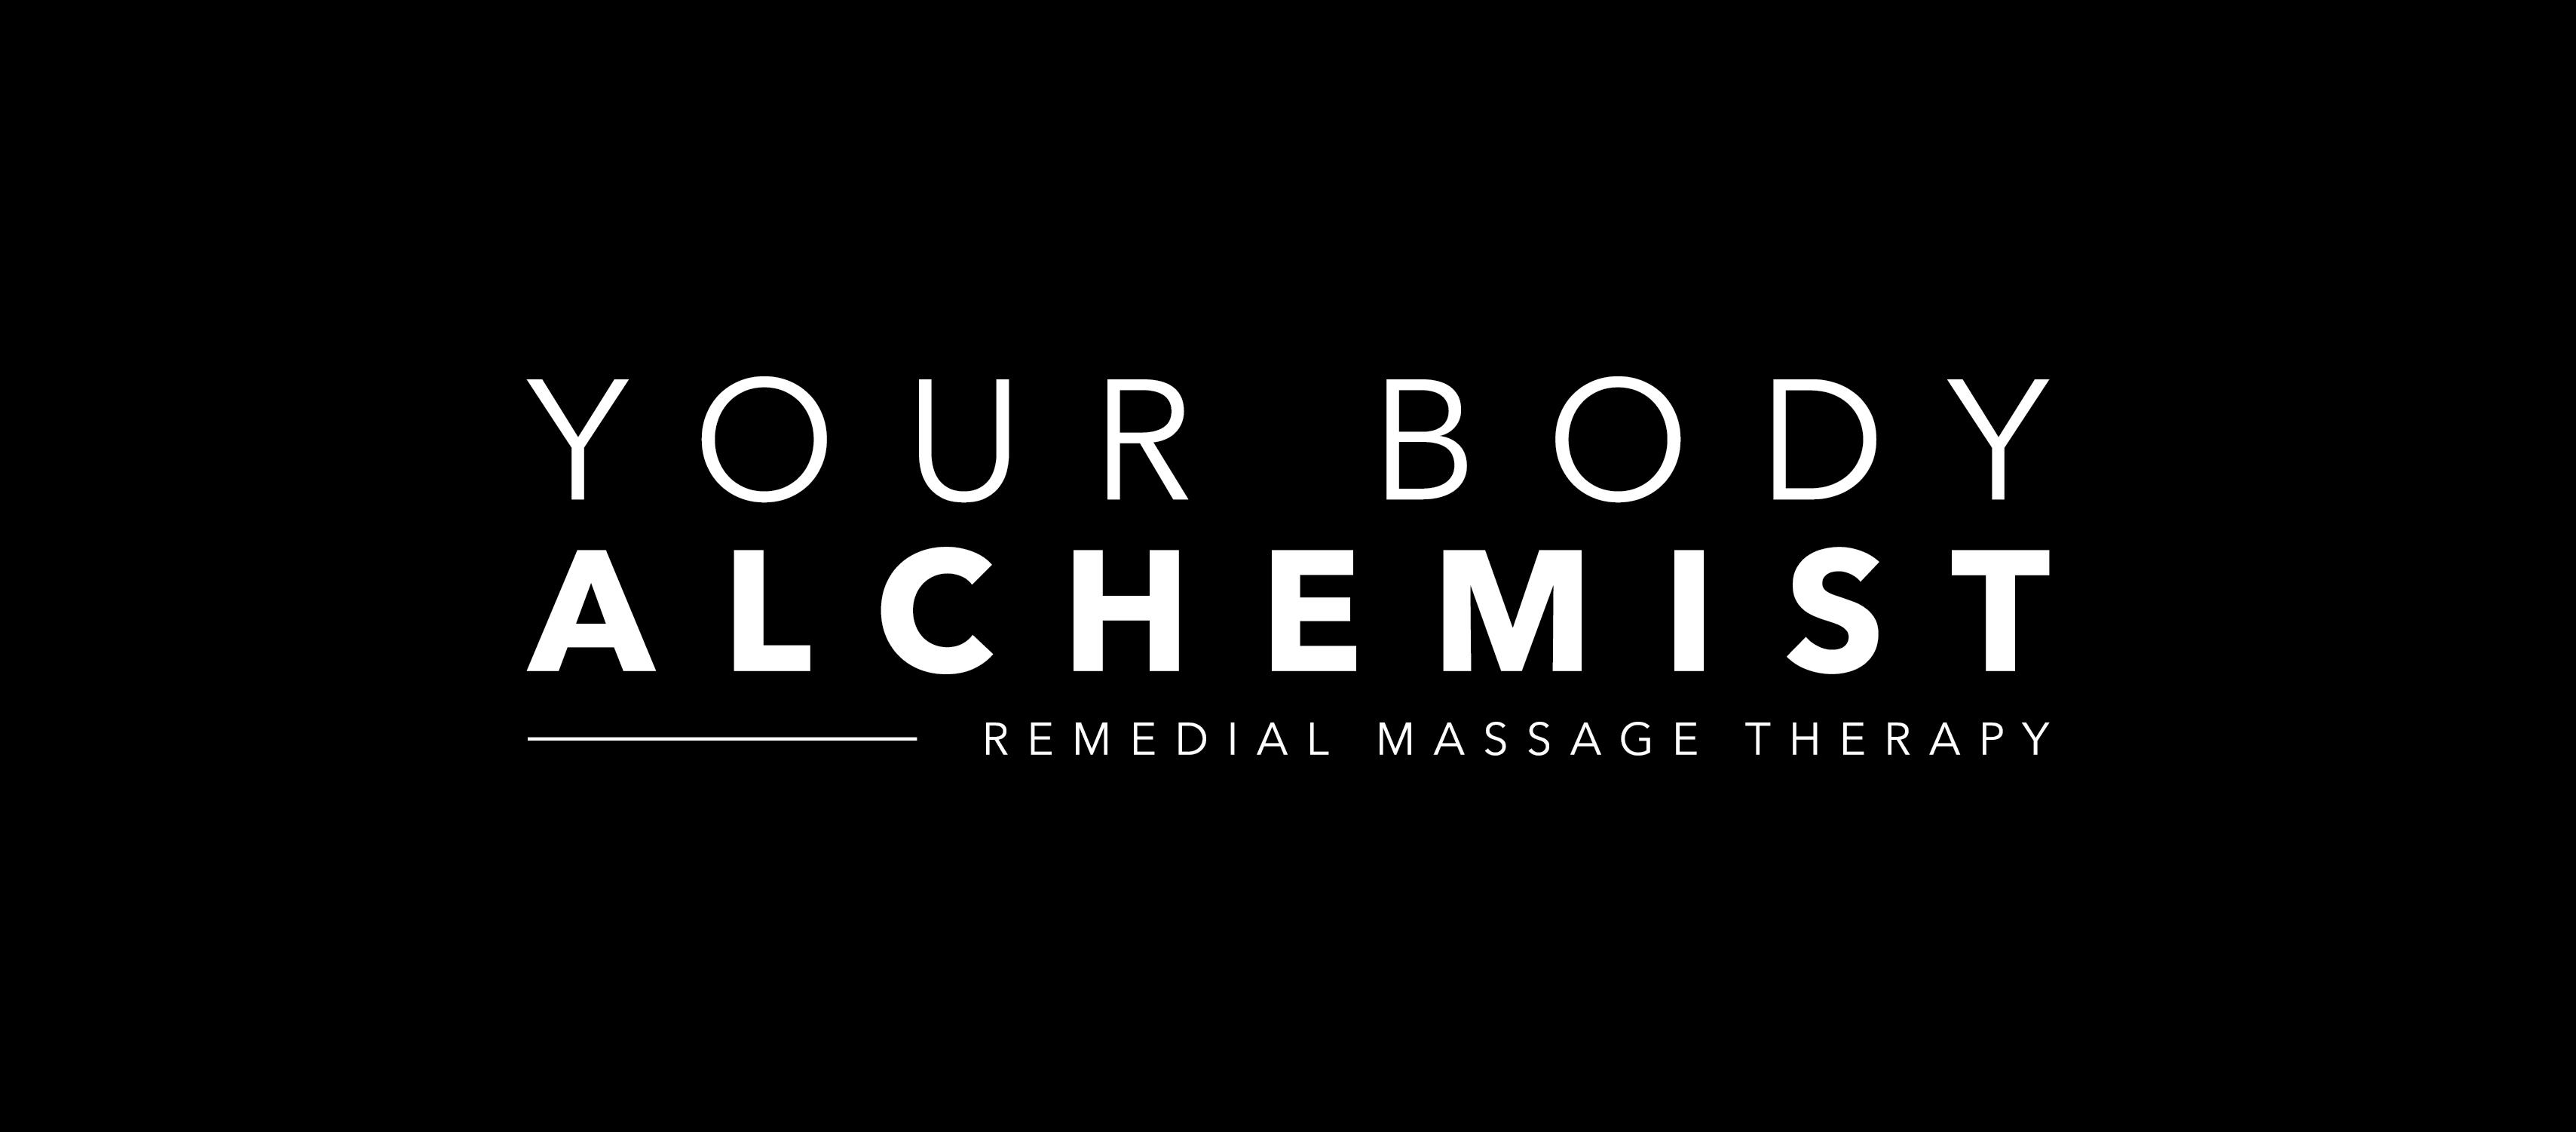 Your Body Alchemist